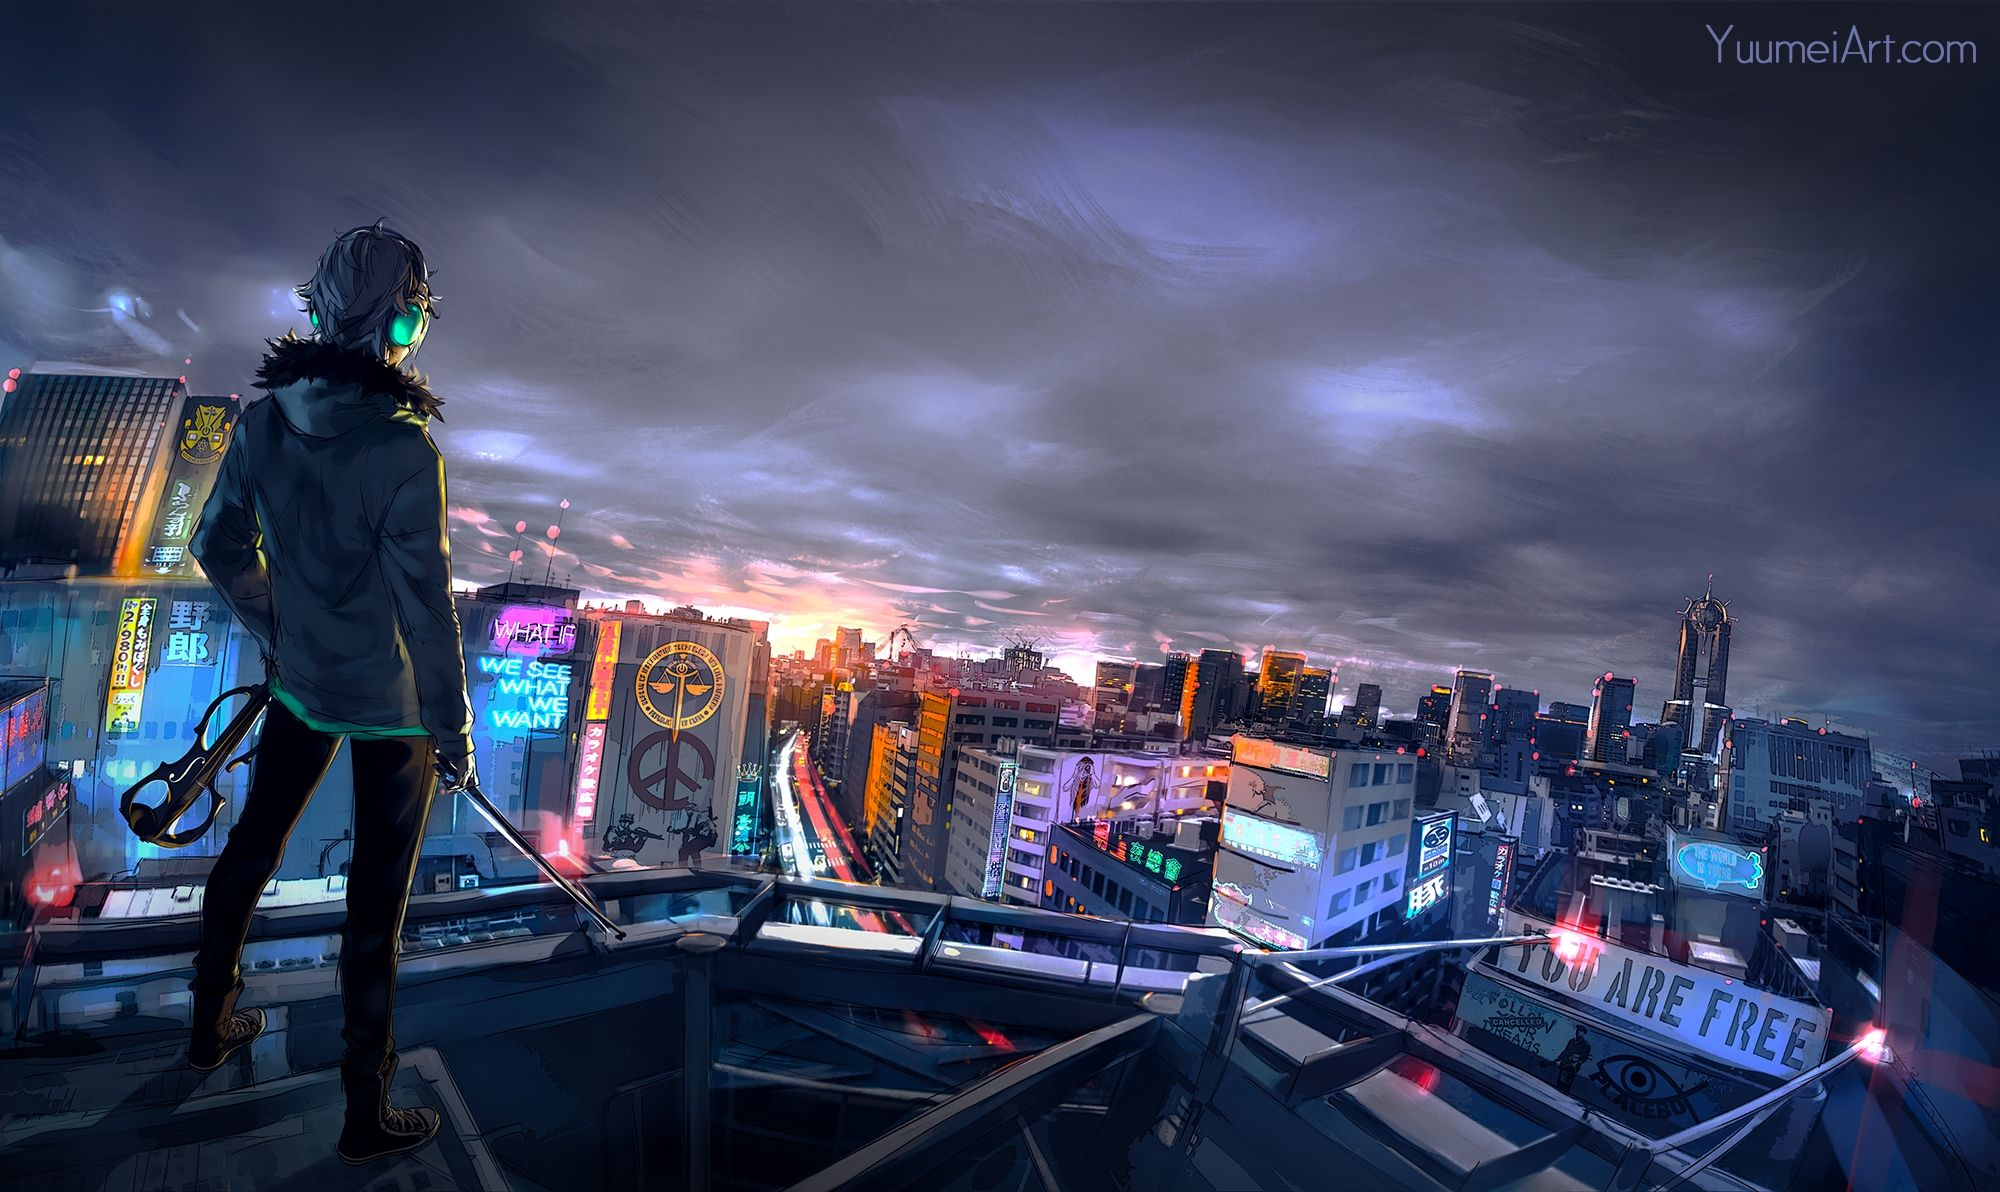 Anime Boy Hoodie Night Cityscape Rooftop Sword Fisheye